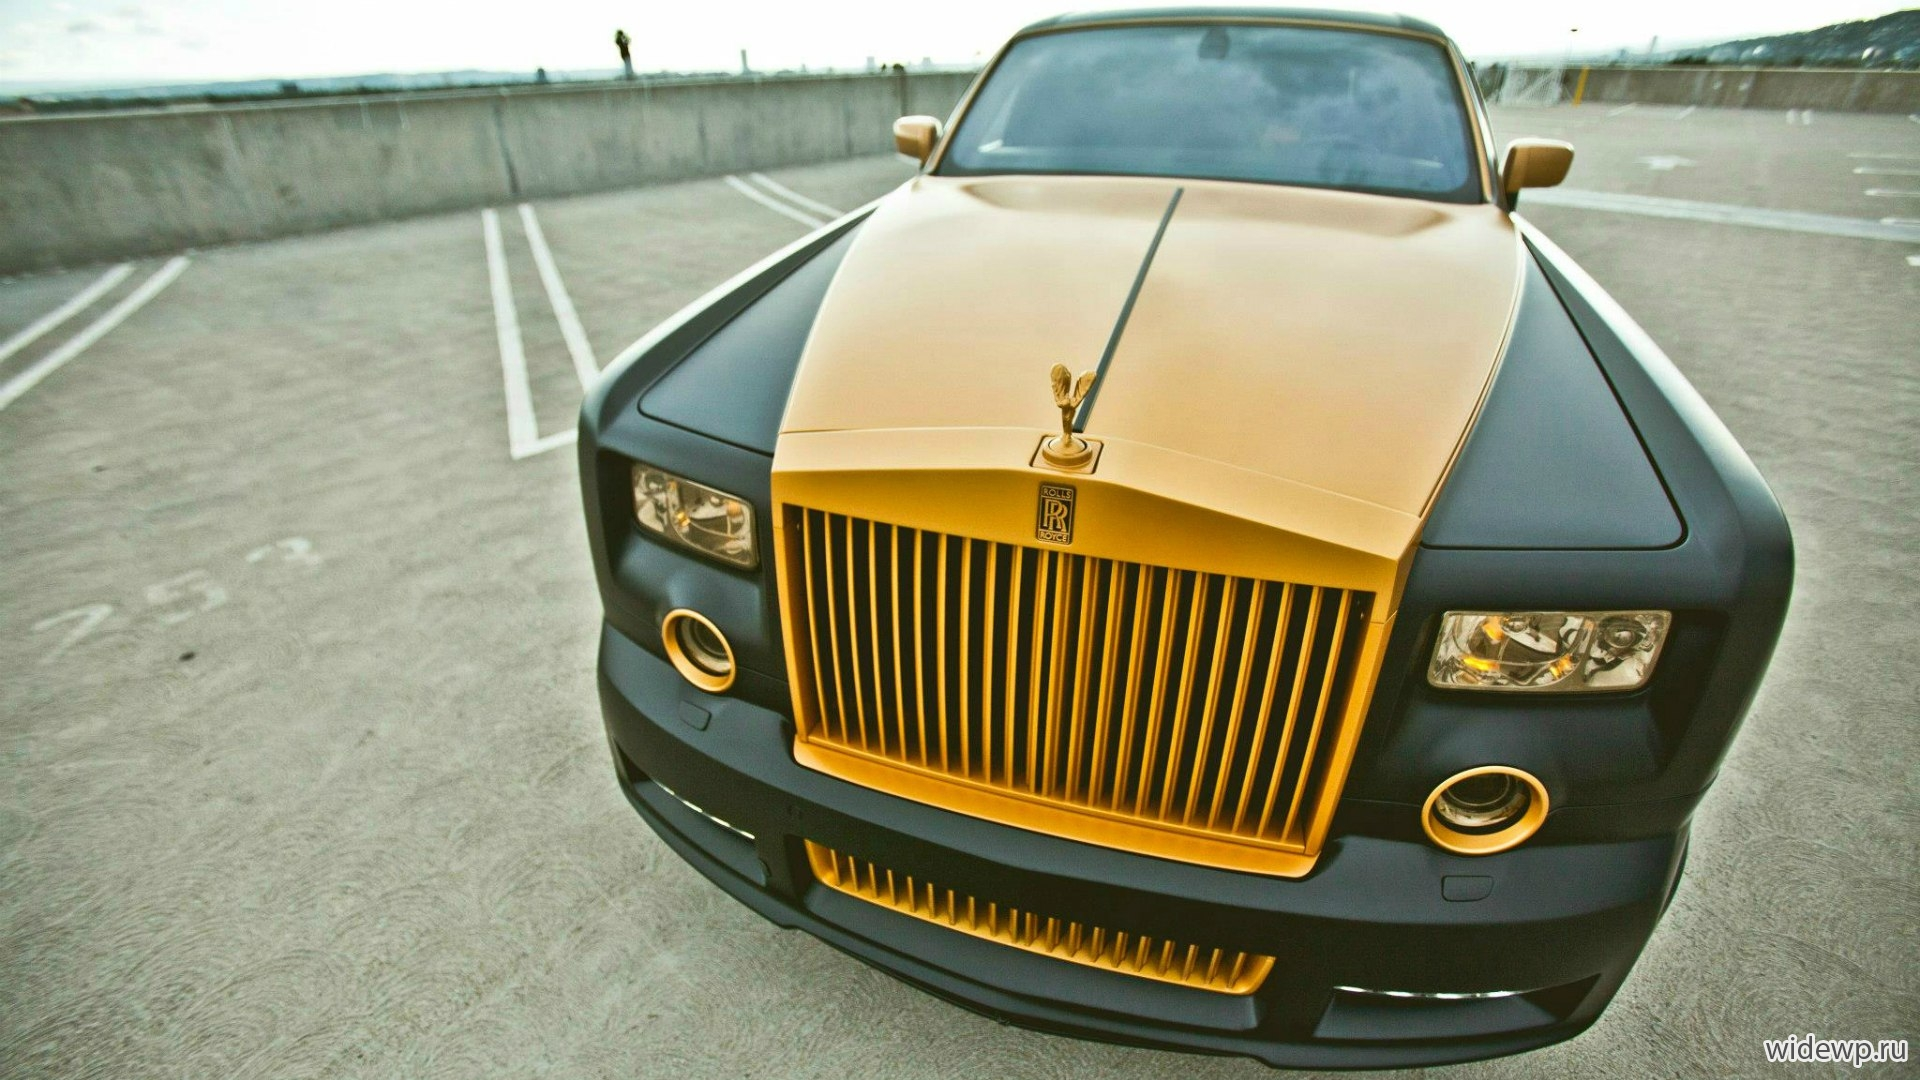 Автомобили Gold Rolls-Royce Phantom